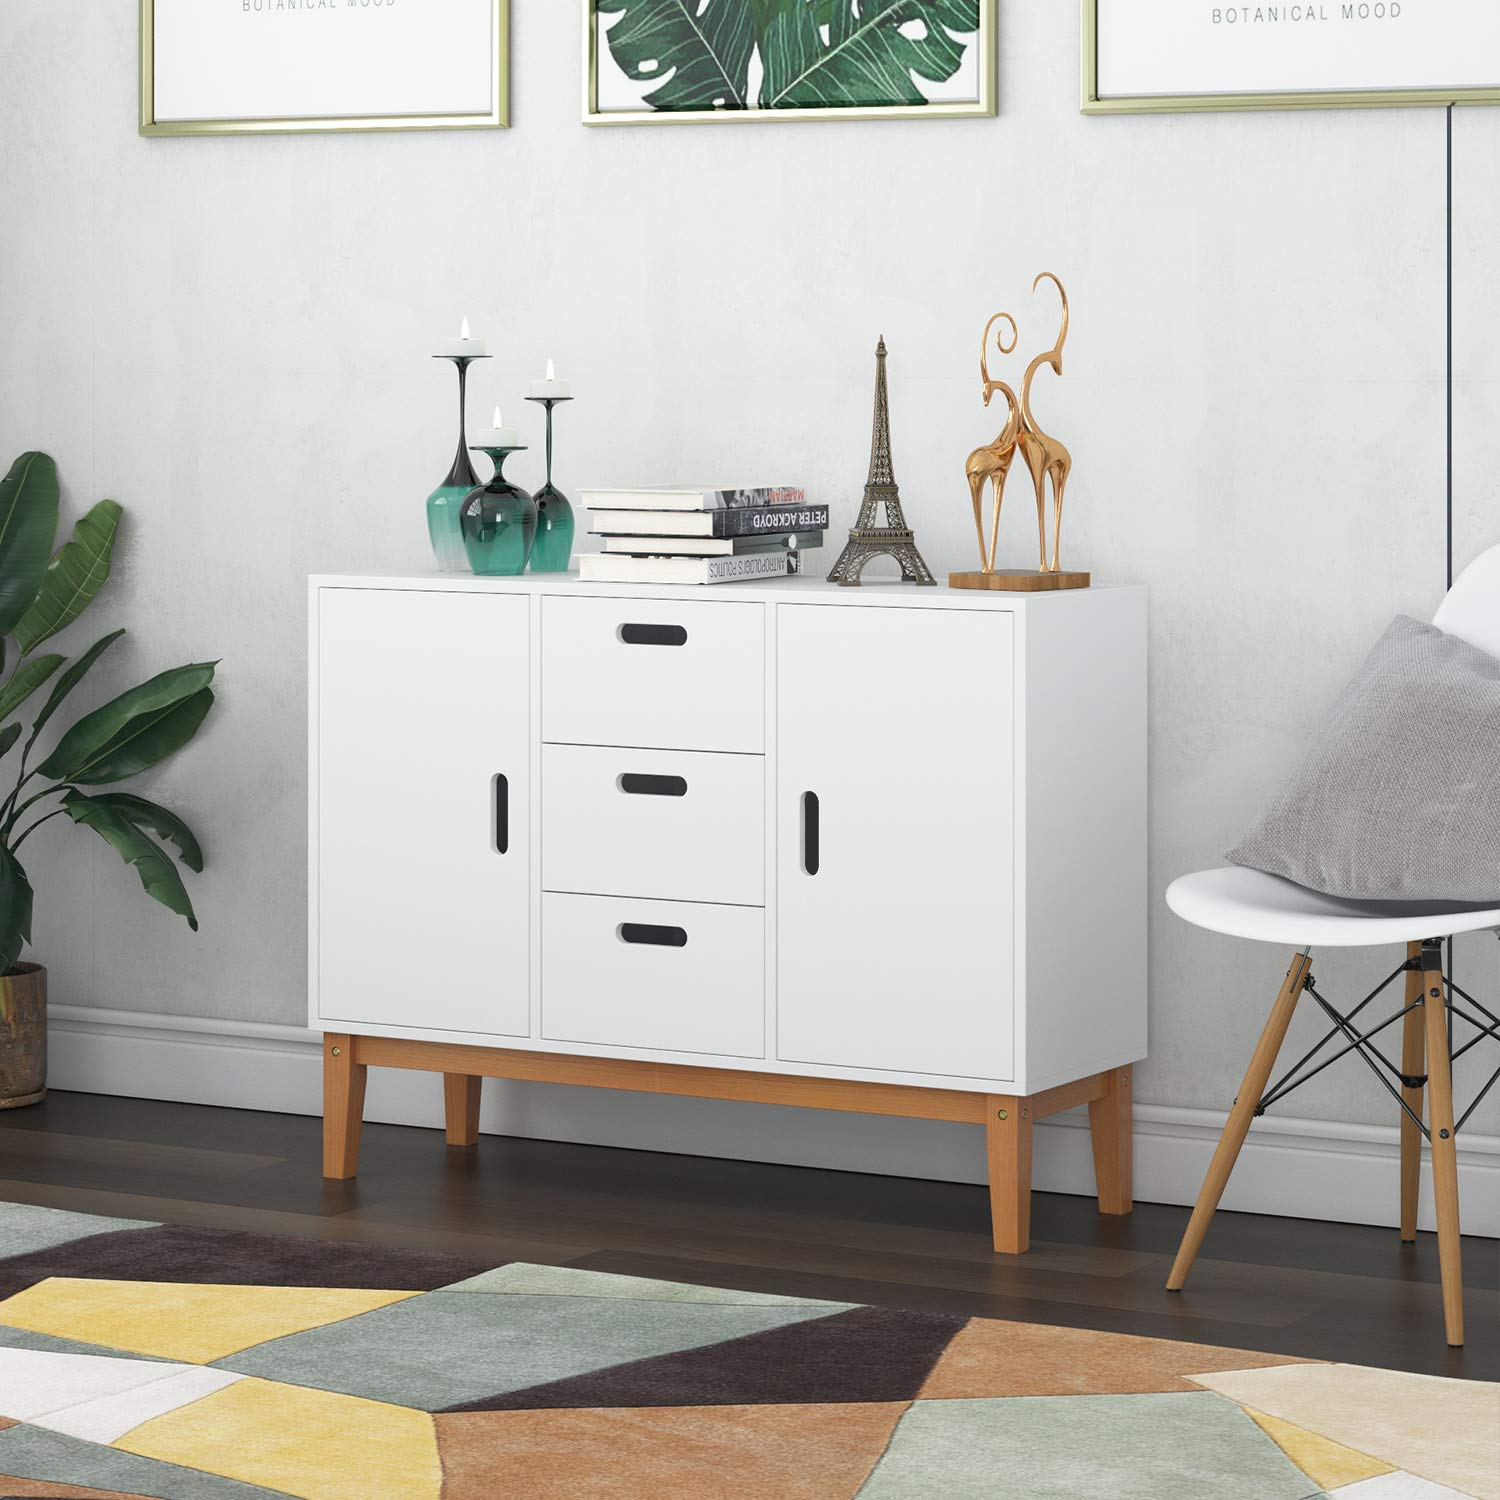 HOMECHO Floor Buffet Sideboard Storage Cabinet Freestanding Console Table Cupboard Chest 2 Door, 3 Drawers and 2 Inside Adjustment Shelf for Hallway, Living Room and Kitchen White Color HMC-MD-004 by HOMECHO (Image #4)